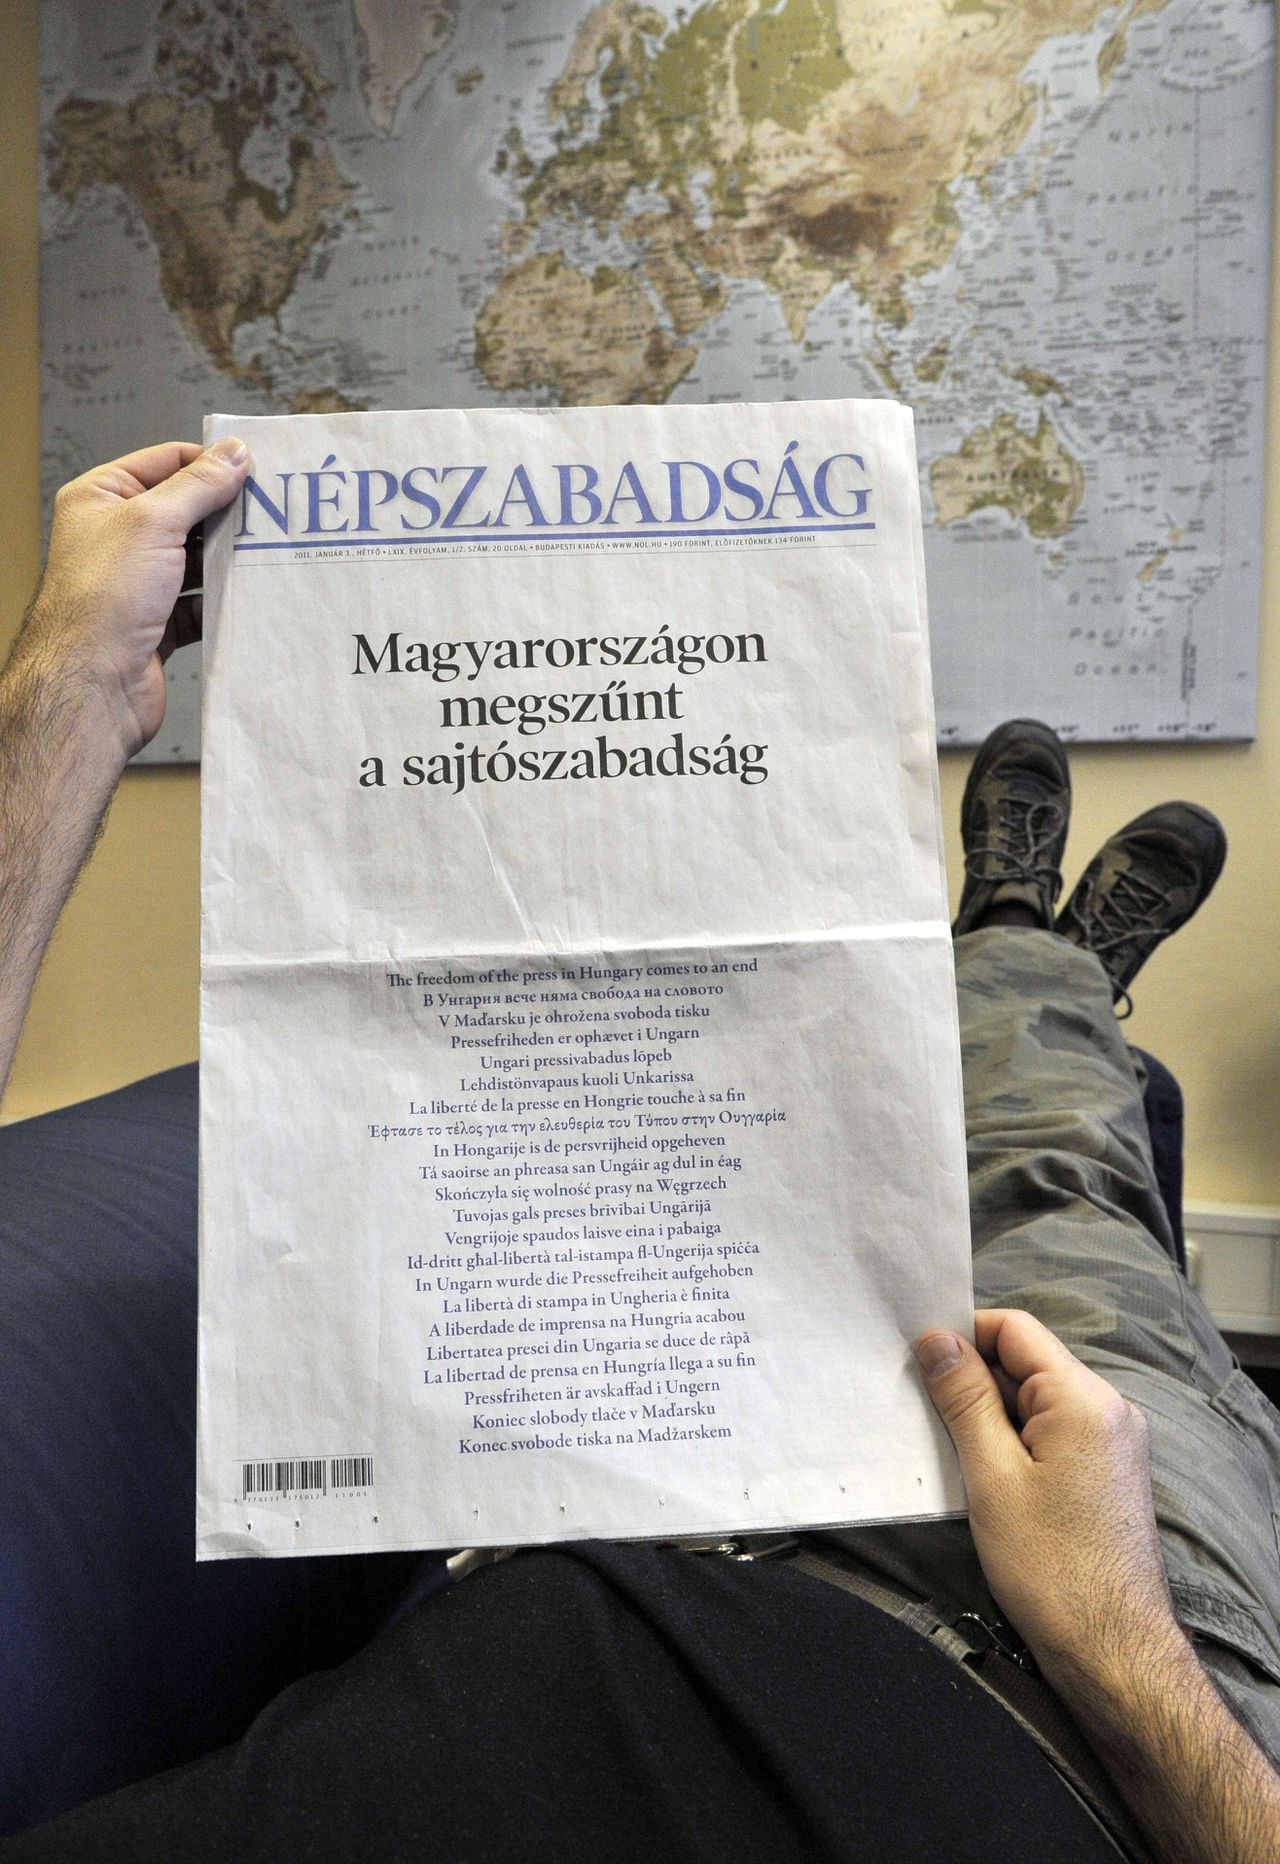 """A photo taken on January 3, 2011 in Budapest shows the front page of Hungarian daily Nepszabadsag. Two major Hungarian newspapers mourned what they saw as the end of press freedom today following the enactment of a controversial new media law, just as Budapest assumed the EU presidency. """"The freedom of the press in Hungary comes to an end,"""" the largest-circulation daily Nepszabadsag plastered on its front page in Hungarian, followed by the same sentence in every official language of the 27-member European Union. AFP PHOTO / ATTILA KISBENEDEK"""